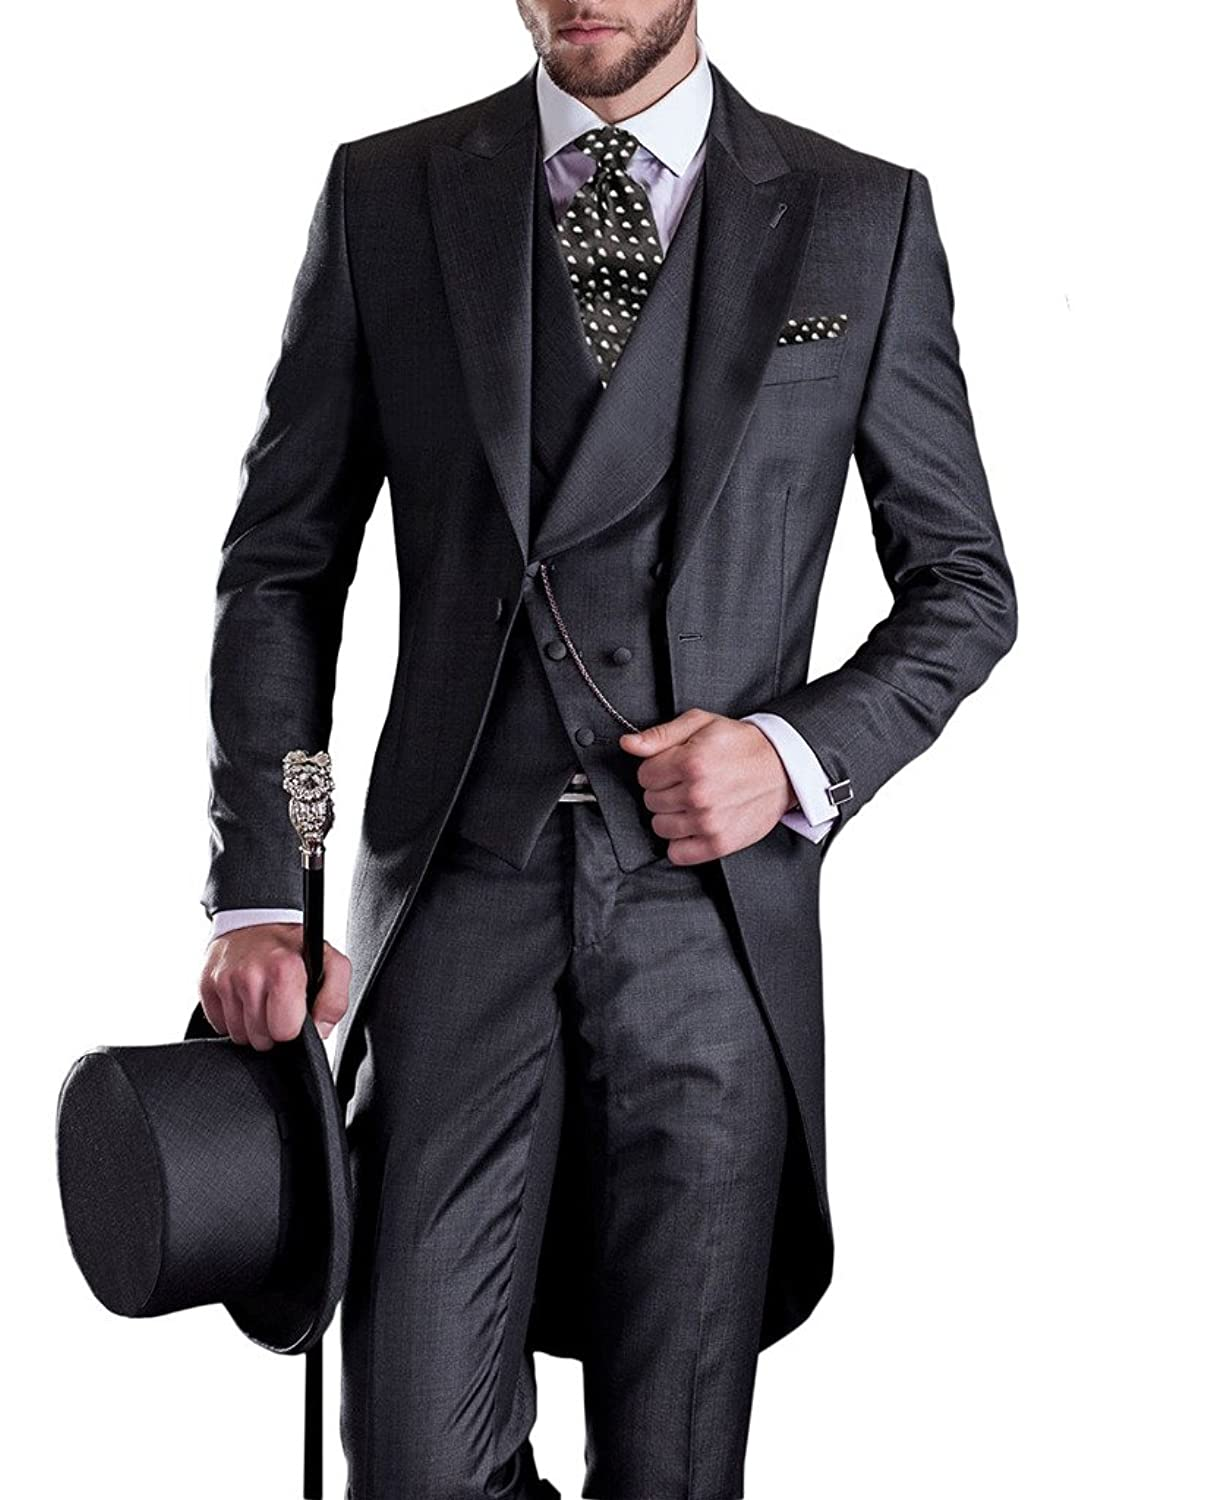 Peaky Blinders & Boardwalk Empire: Men's 1920s Gangster Clothing Mens Tail Tuxedo 3pc Tailcoat suit in Gray Suit Jacket Vest Suit Pants GEORGE BRIDE Premium $79.00 AT vintagedancer.com